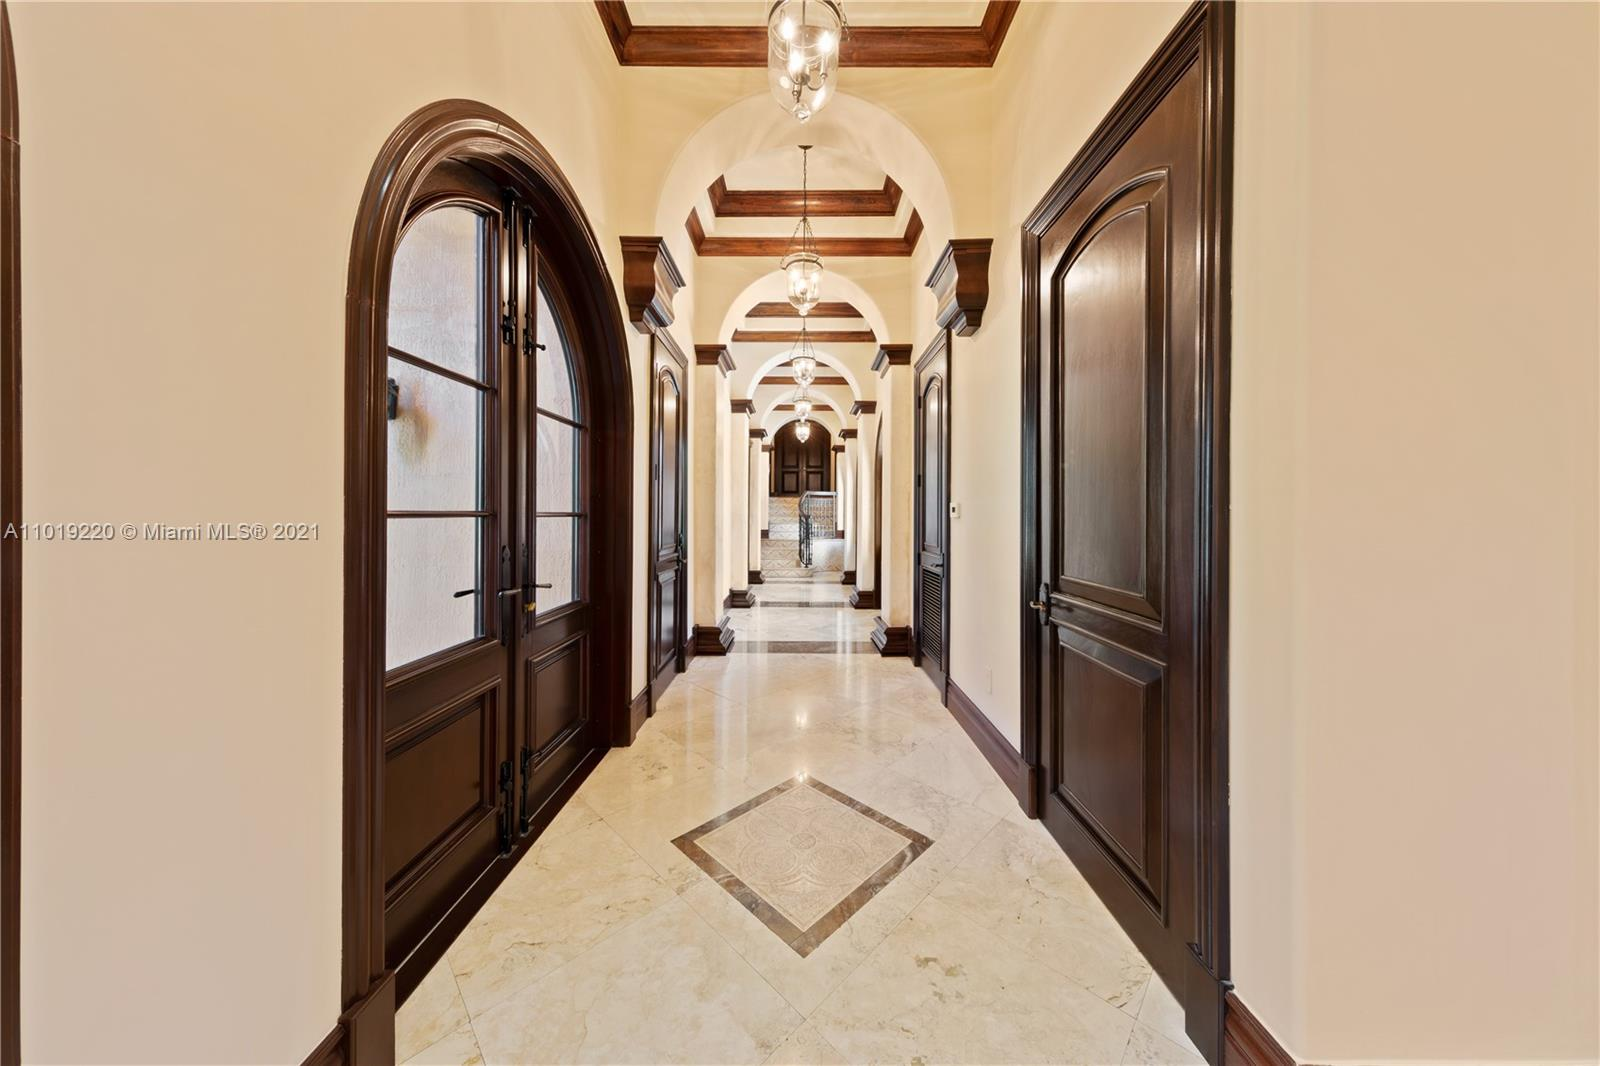 THE HALLWAY IS IMPRESSIVE AND SPEAKS FOR ITSELF.  DOORS/ WINDOWS WERE CUSTOM MADE AND IMPORTED DIRECTLY FROM HONDURAS.. HONDURAN MAHAOGANY.. THE FLOORS WERE IMPORTED BY FAMILY FROM JERUUSALEM ARE J.TRAVERTINE.